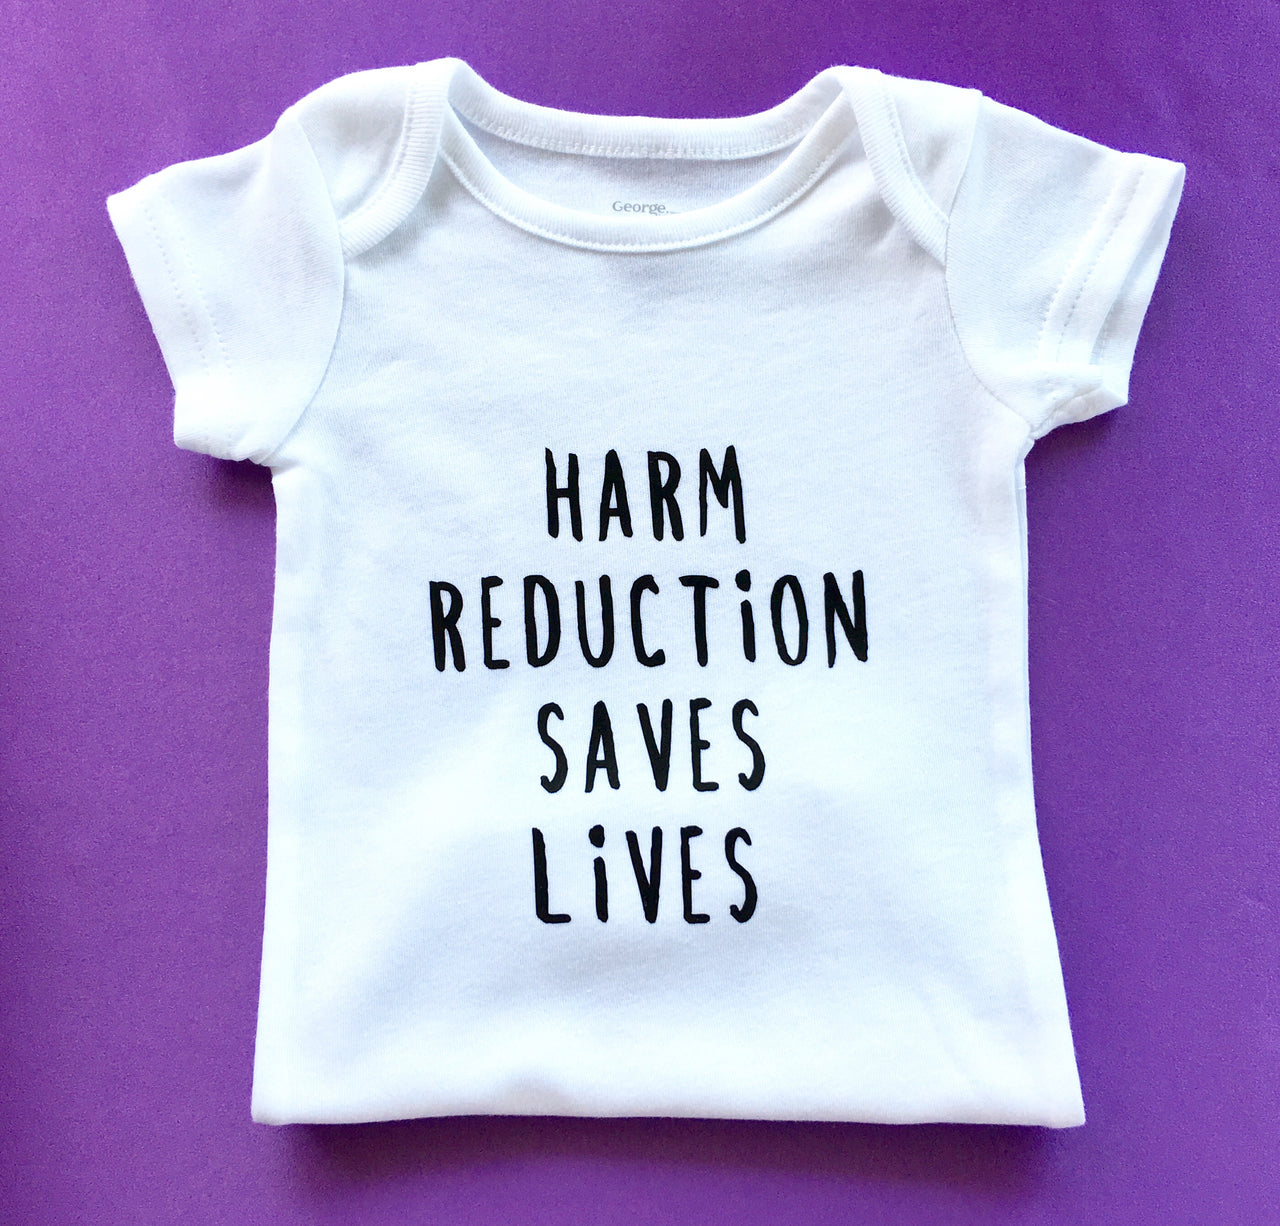 Harm reduction saves lives baby bodysuit - Radical Buttons